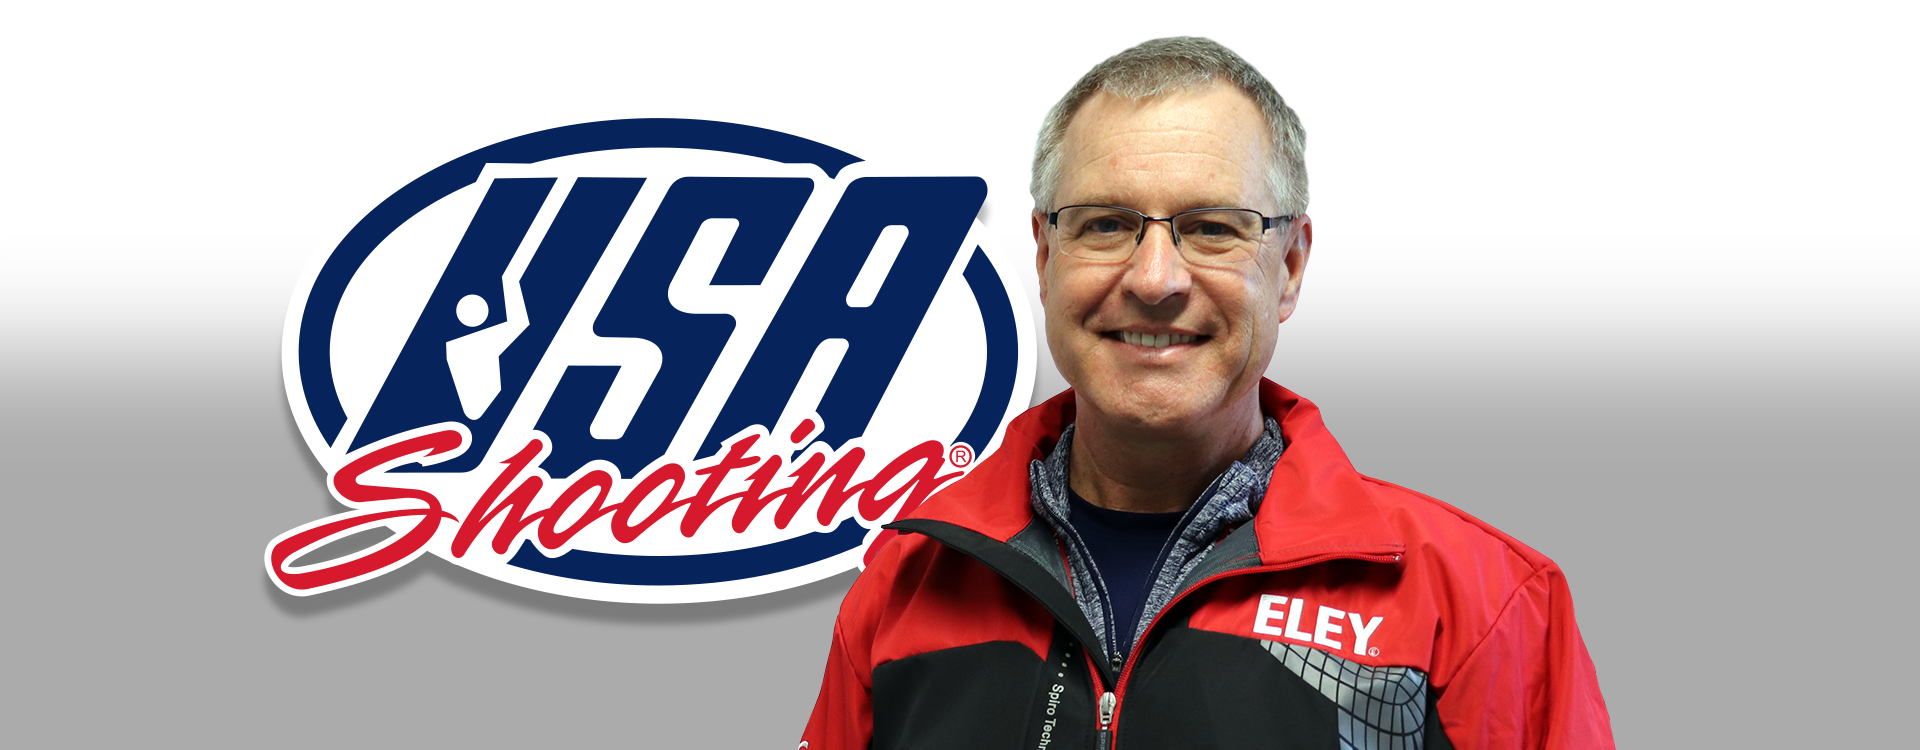 Going for gold: ELEY ammunition sponsor the USA Olympic shooting team